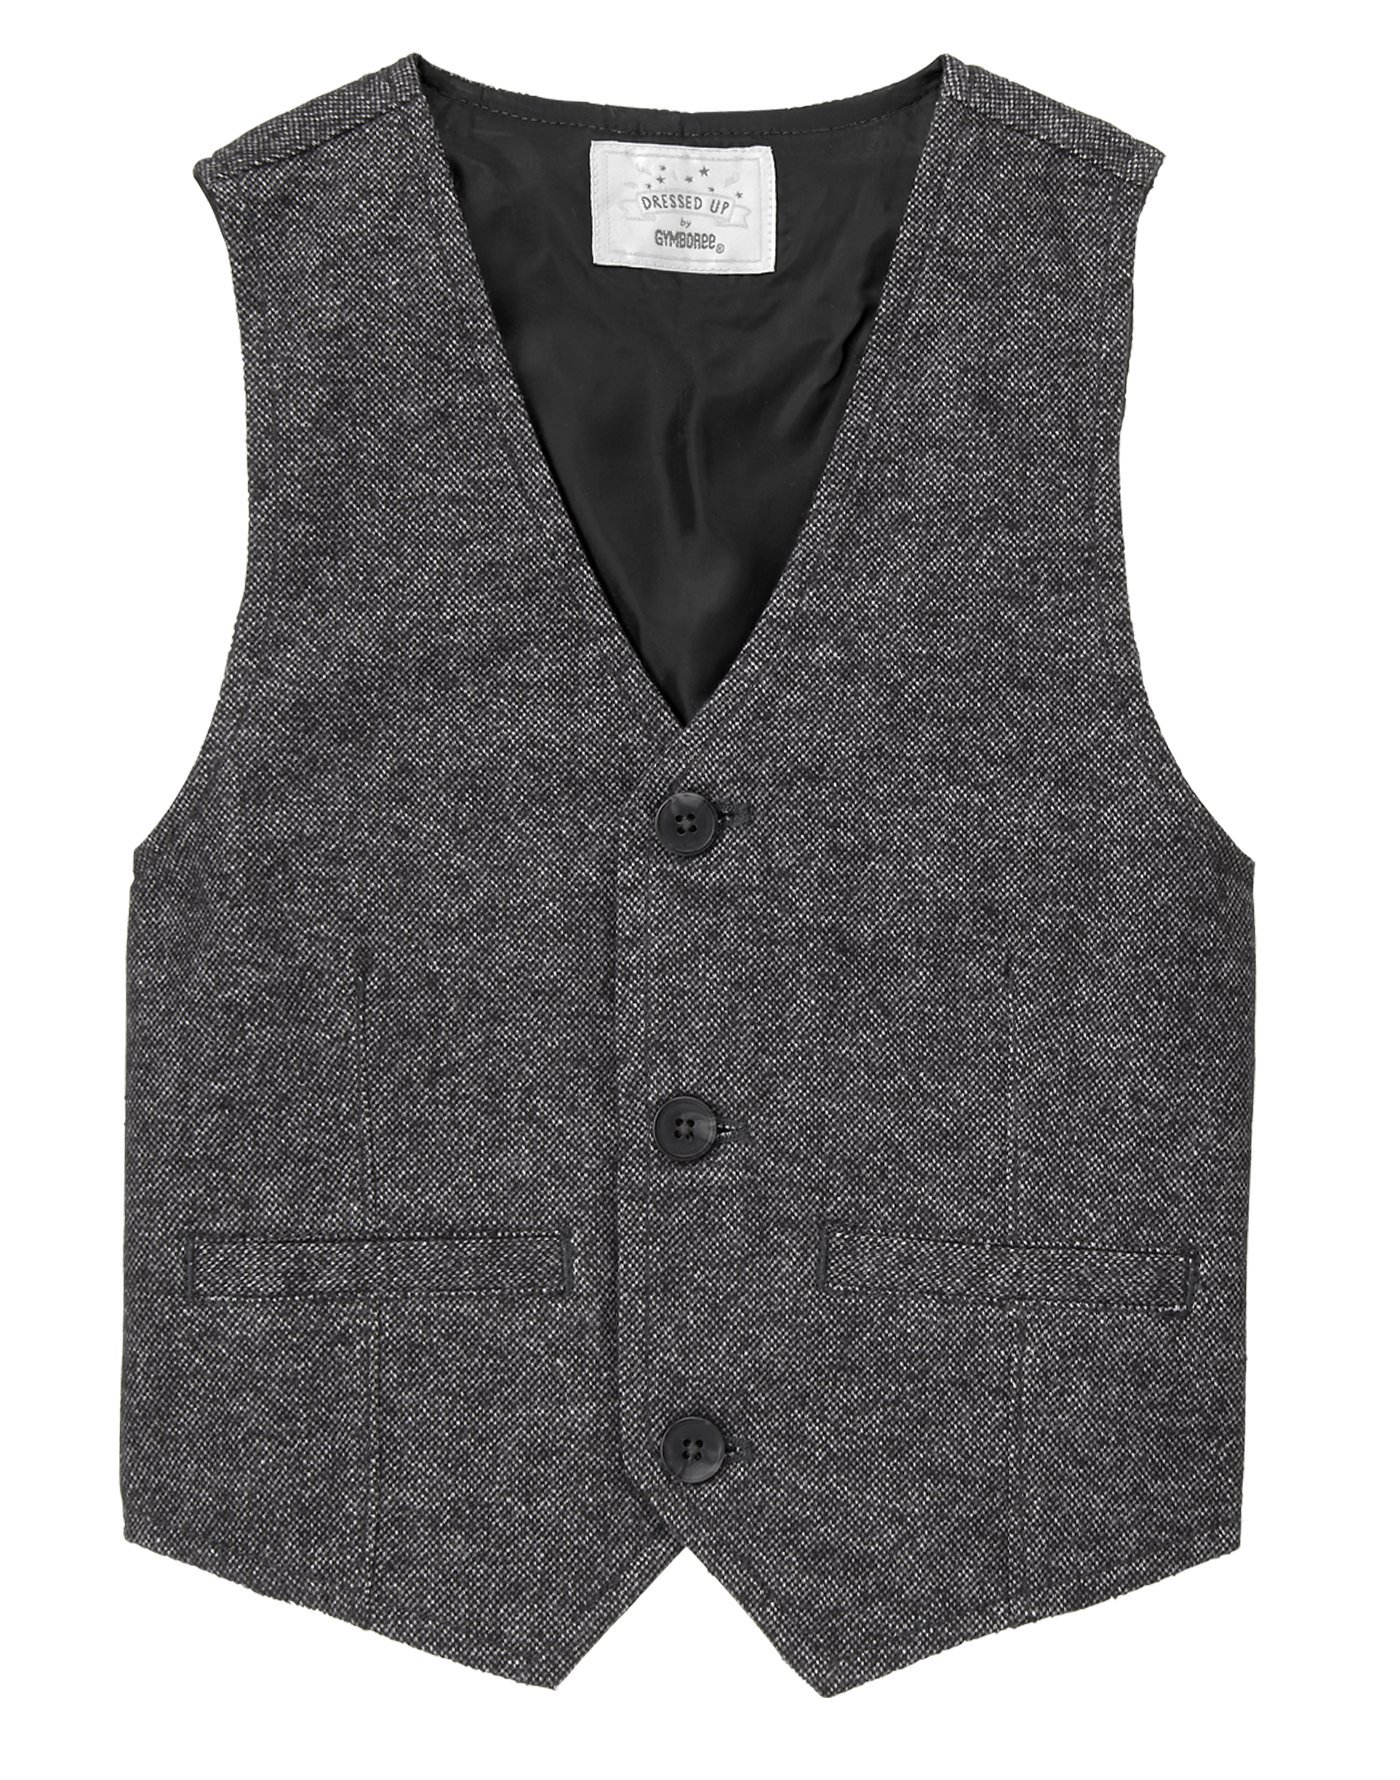 Gymboree Boys' Tweed Button up Vest, Castlerock, M